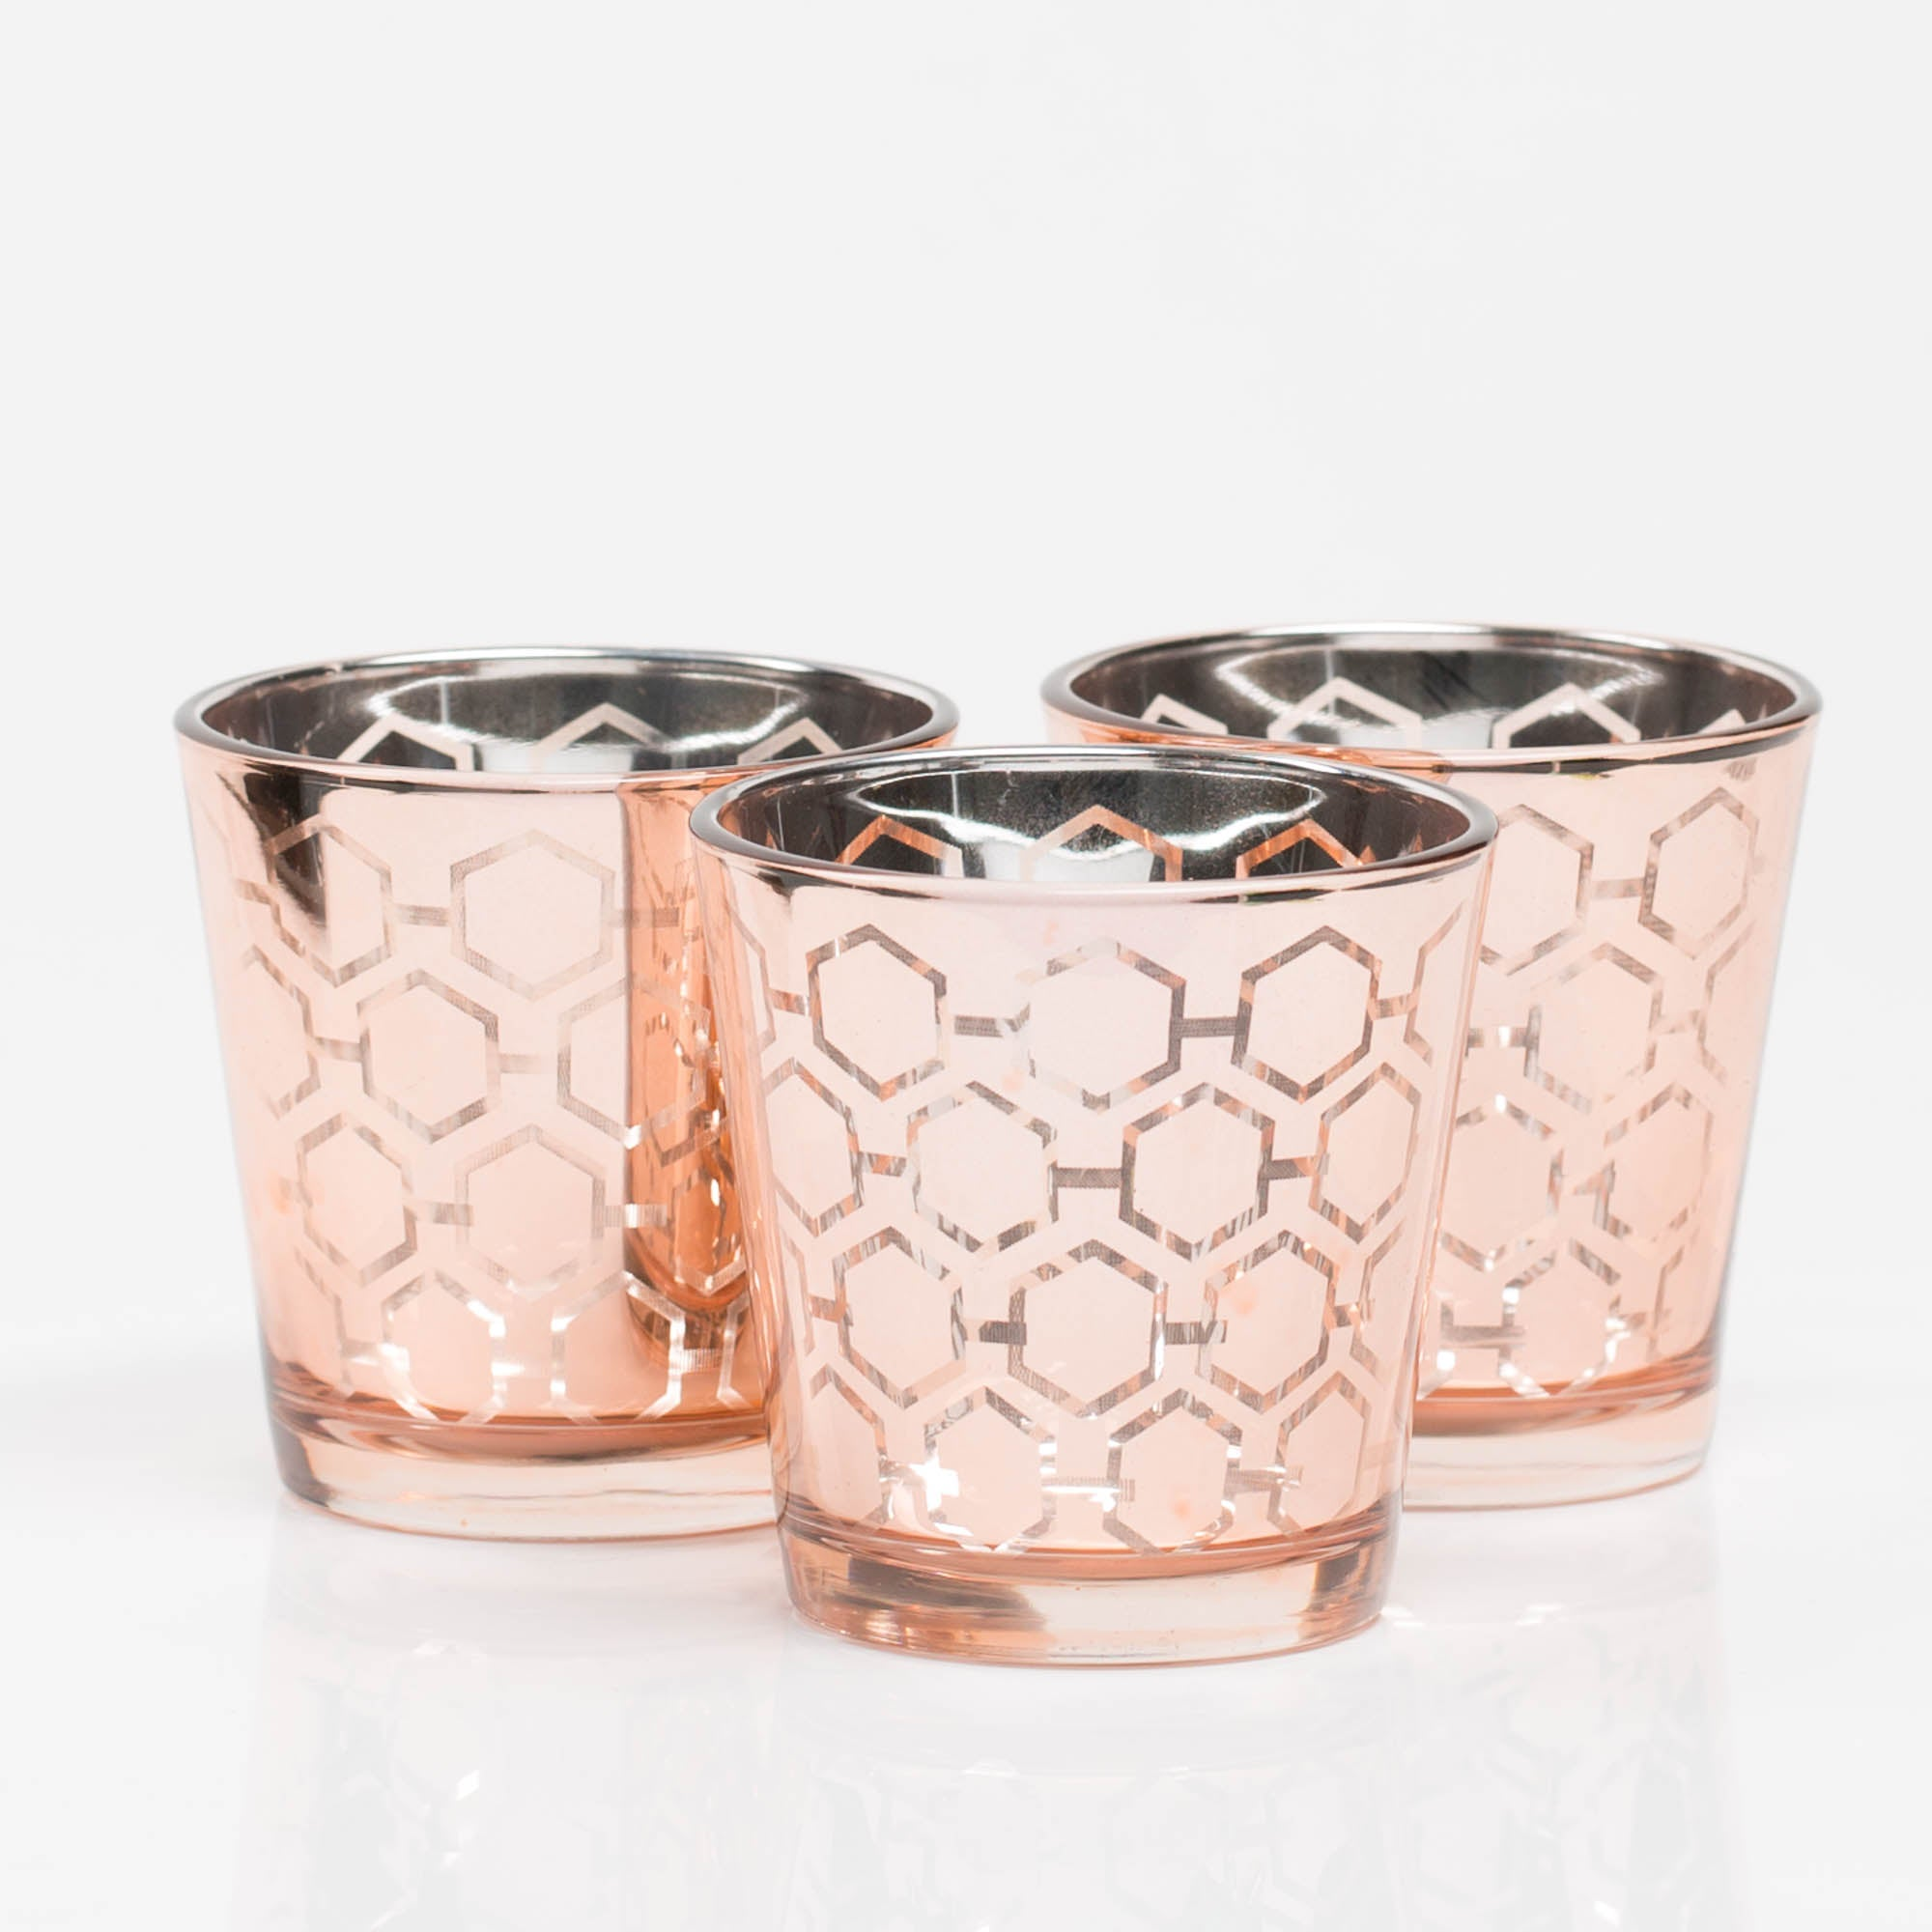 Richland Rose Gold Hexagonal Glass Holder - Medium Set of 6